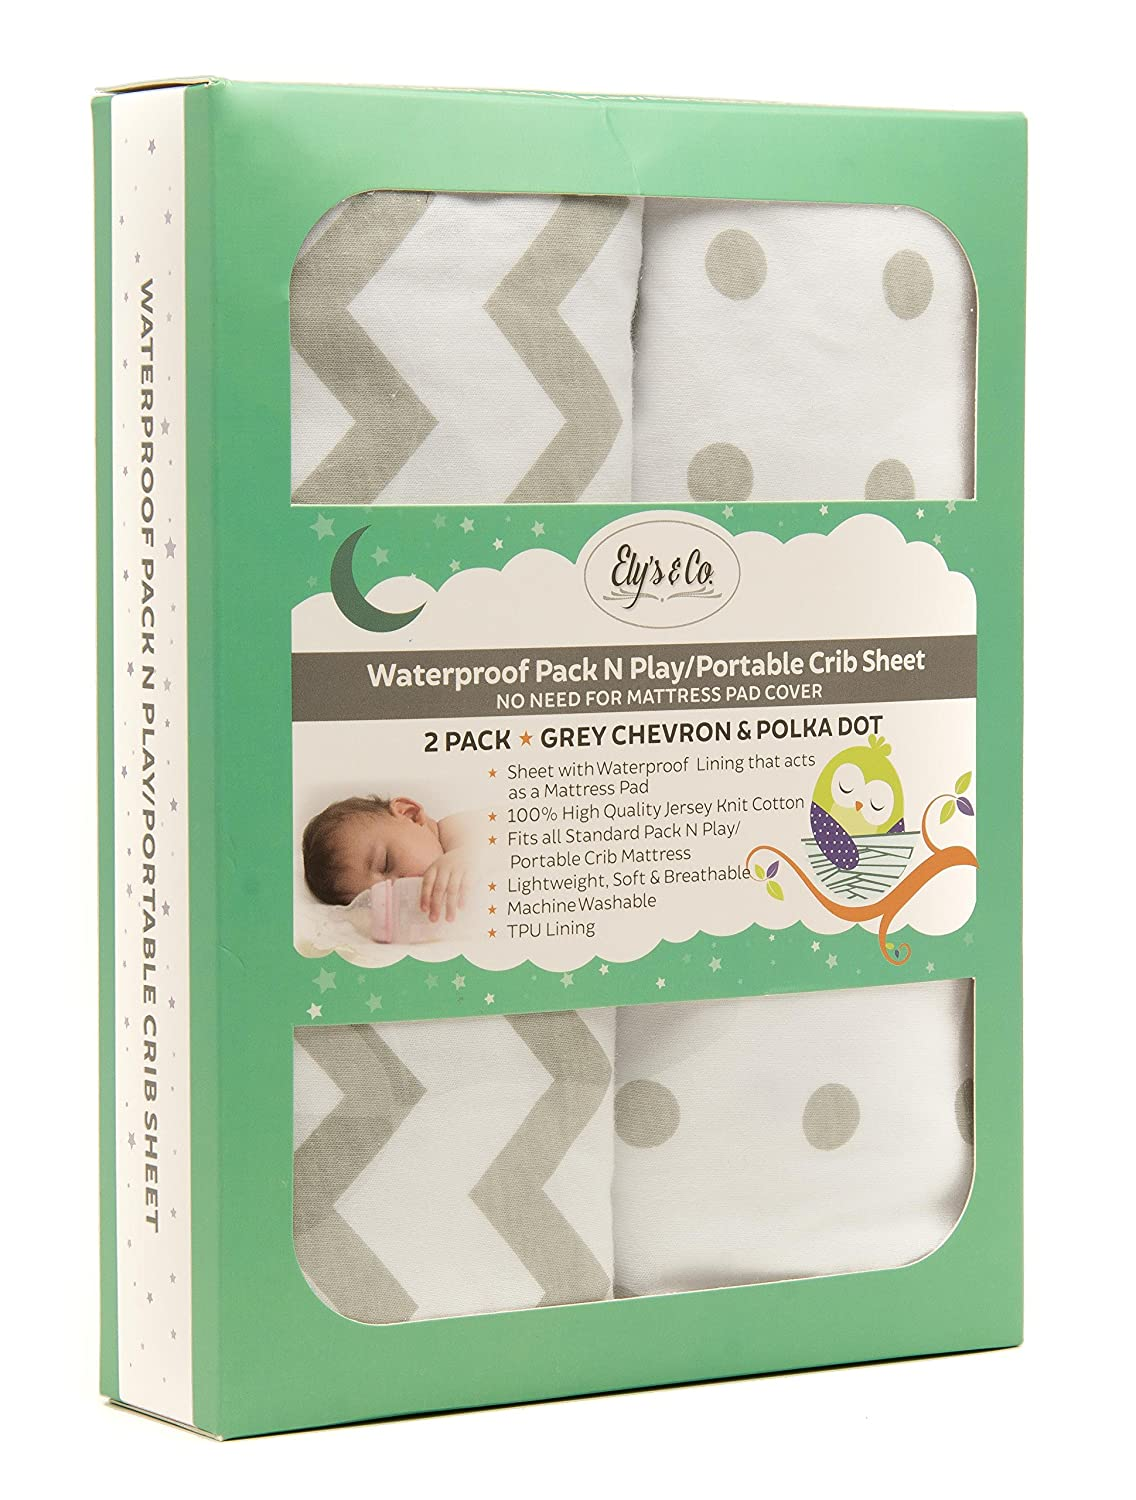 Kid's Waterproof Pack n Play Portable Mini Crib Sheet with Mattress Pad  Cover Protection, White and Grey Chevron and Polka Dots (2 Pack) : Baby